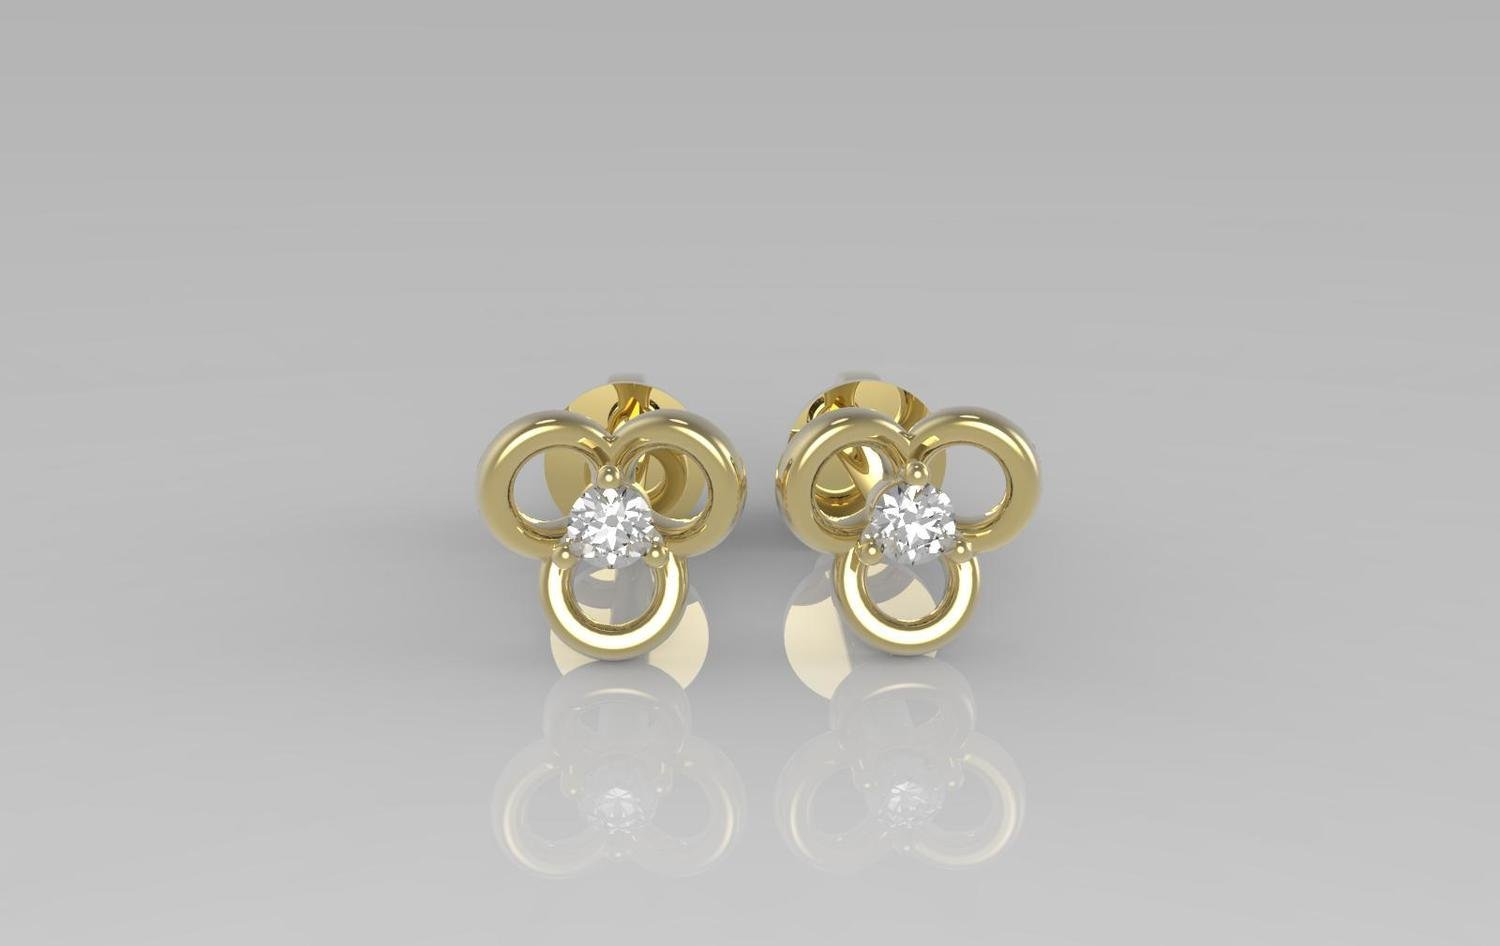 3D CAD model of Floral design diamond earrings with stones